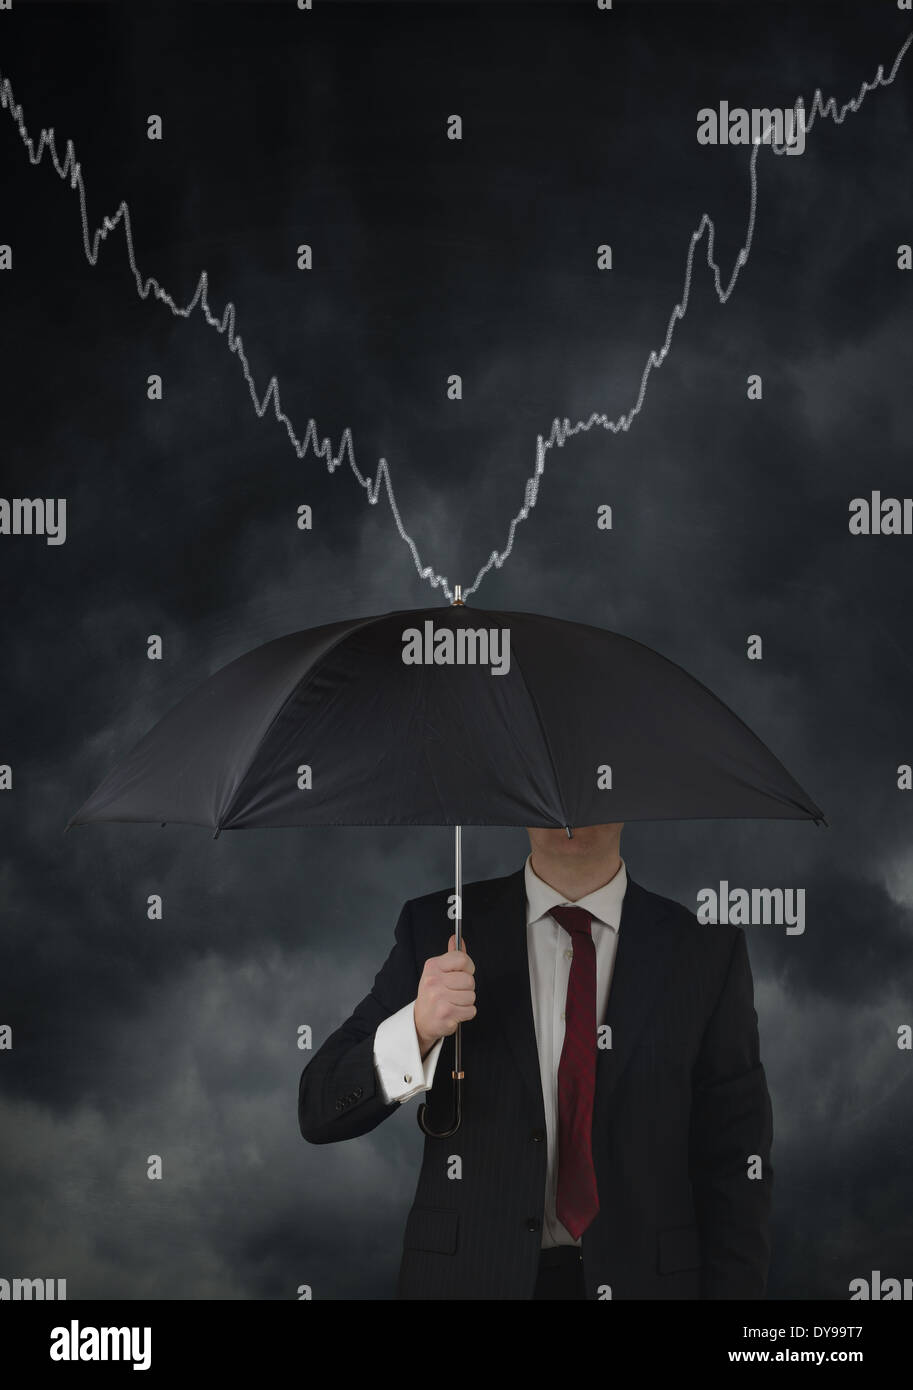 concept for financial protection until recovery, man holding umbrella - Stock Image